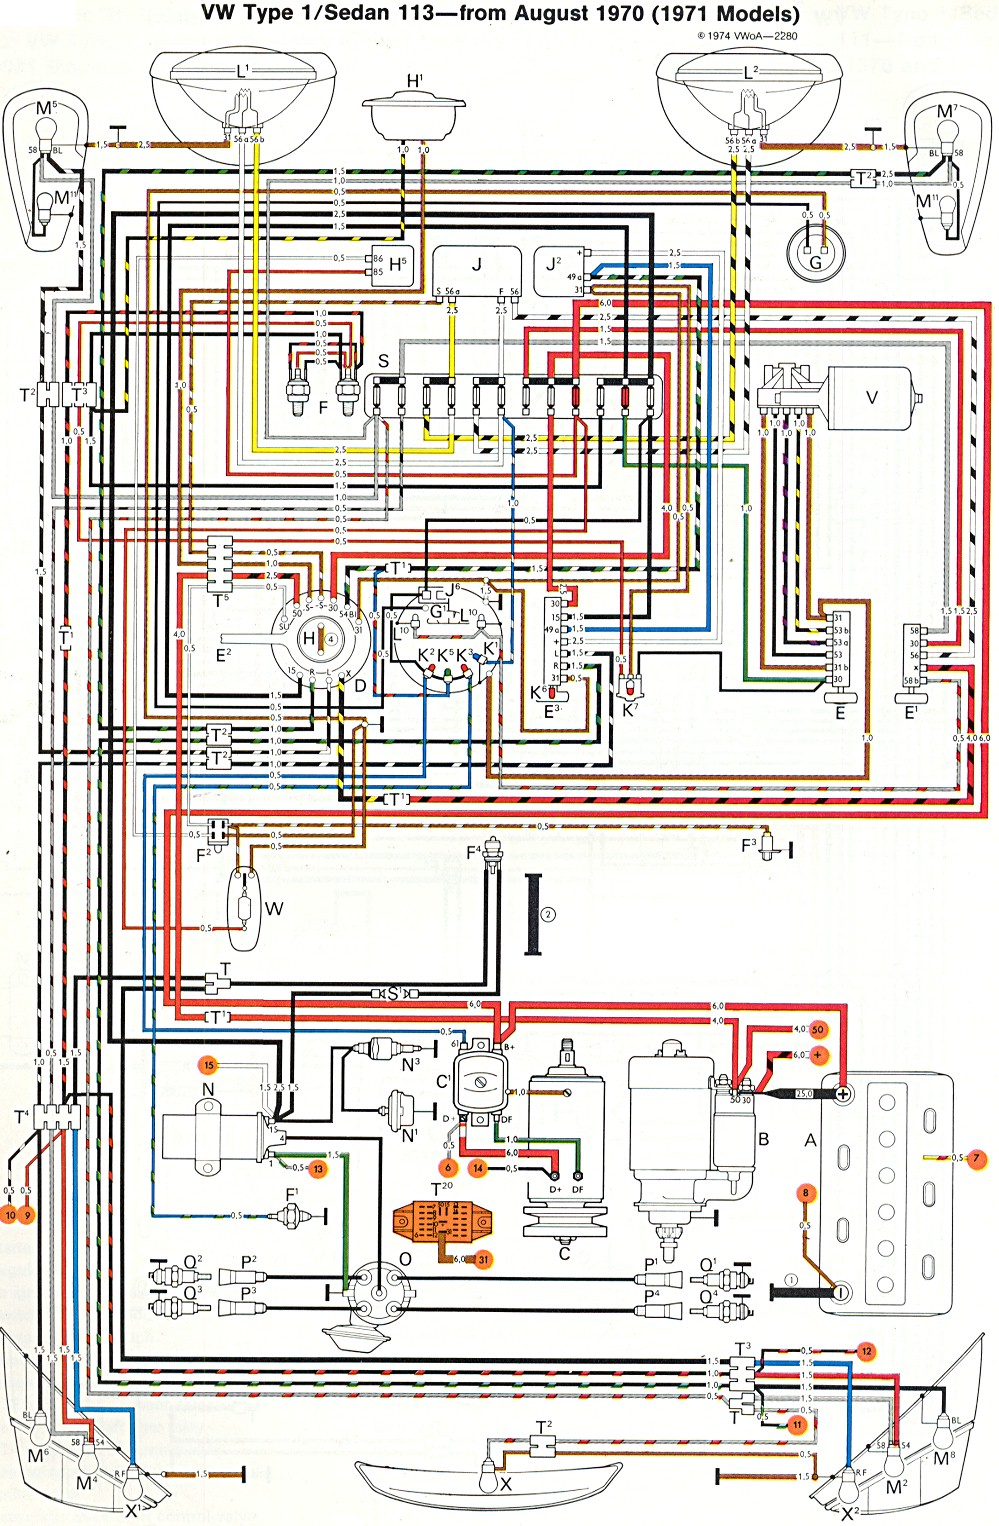 bug_super_71 1971 super beetle wiring diagram thegoldenbug com vw beetle wiring diagram at readyjetset.co